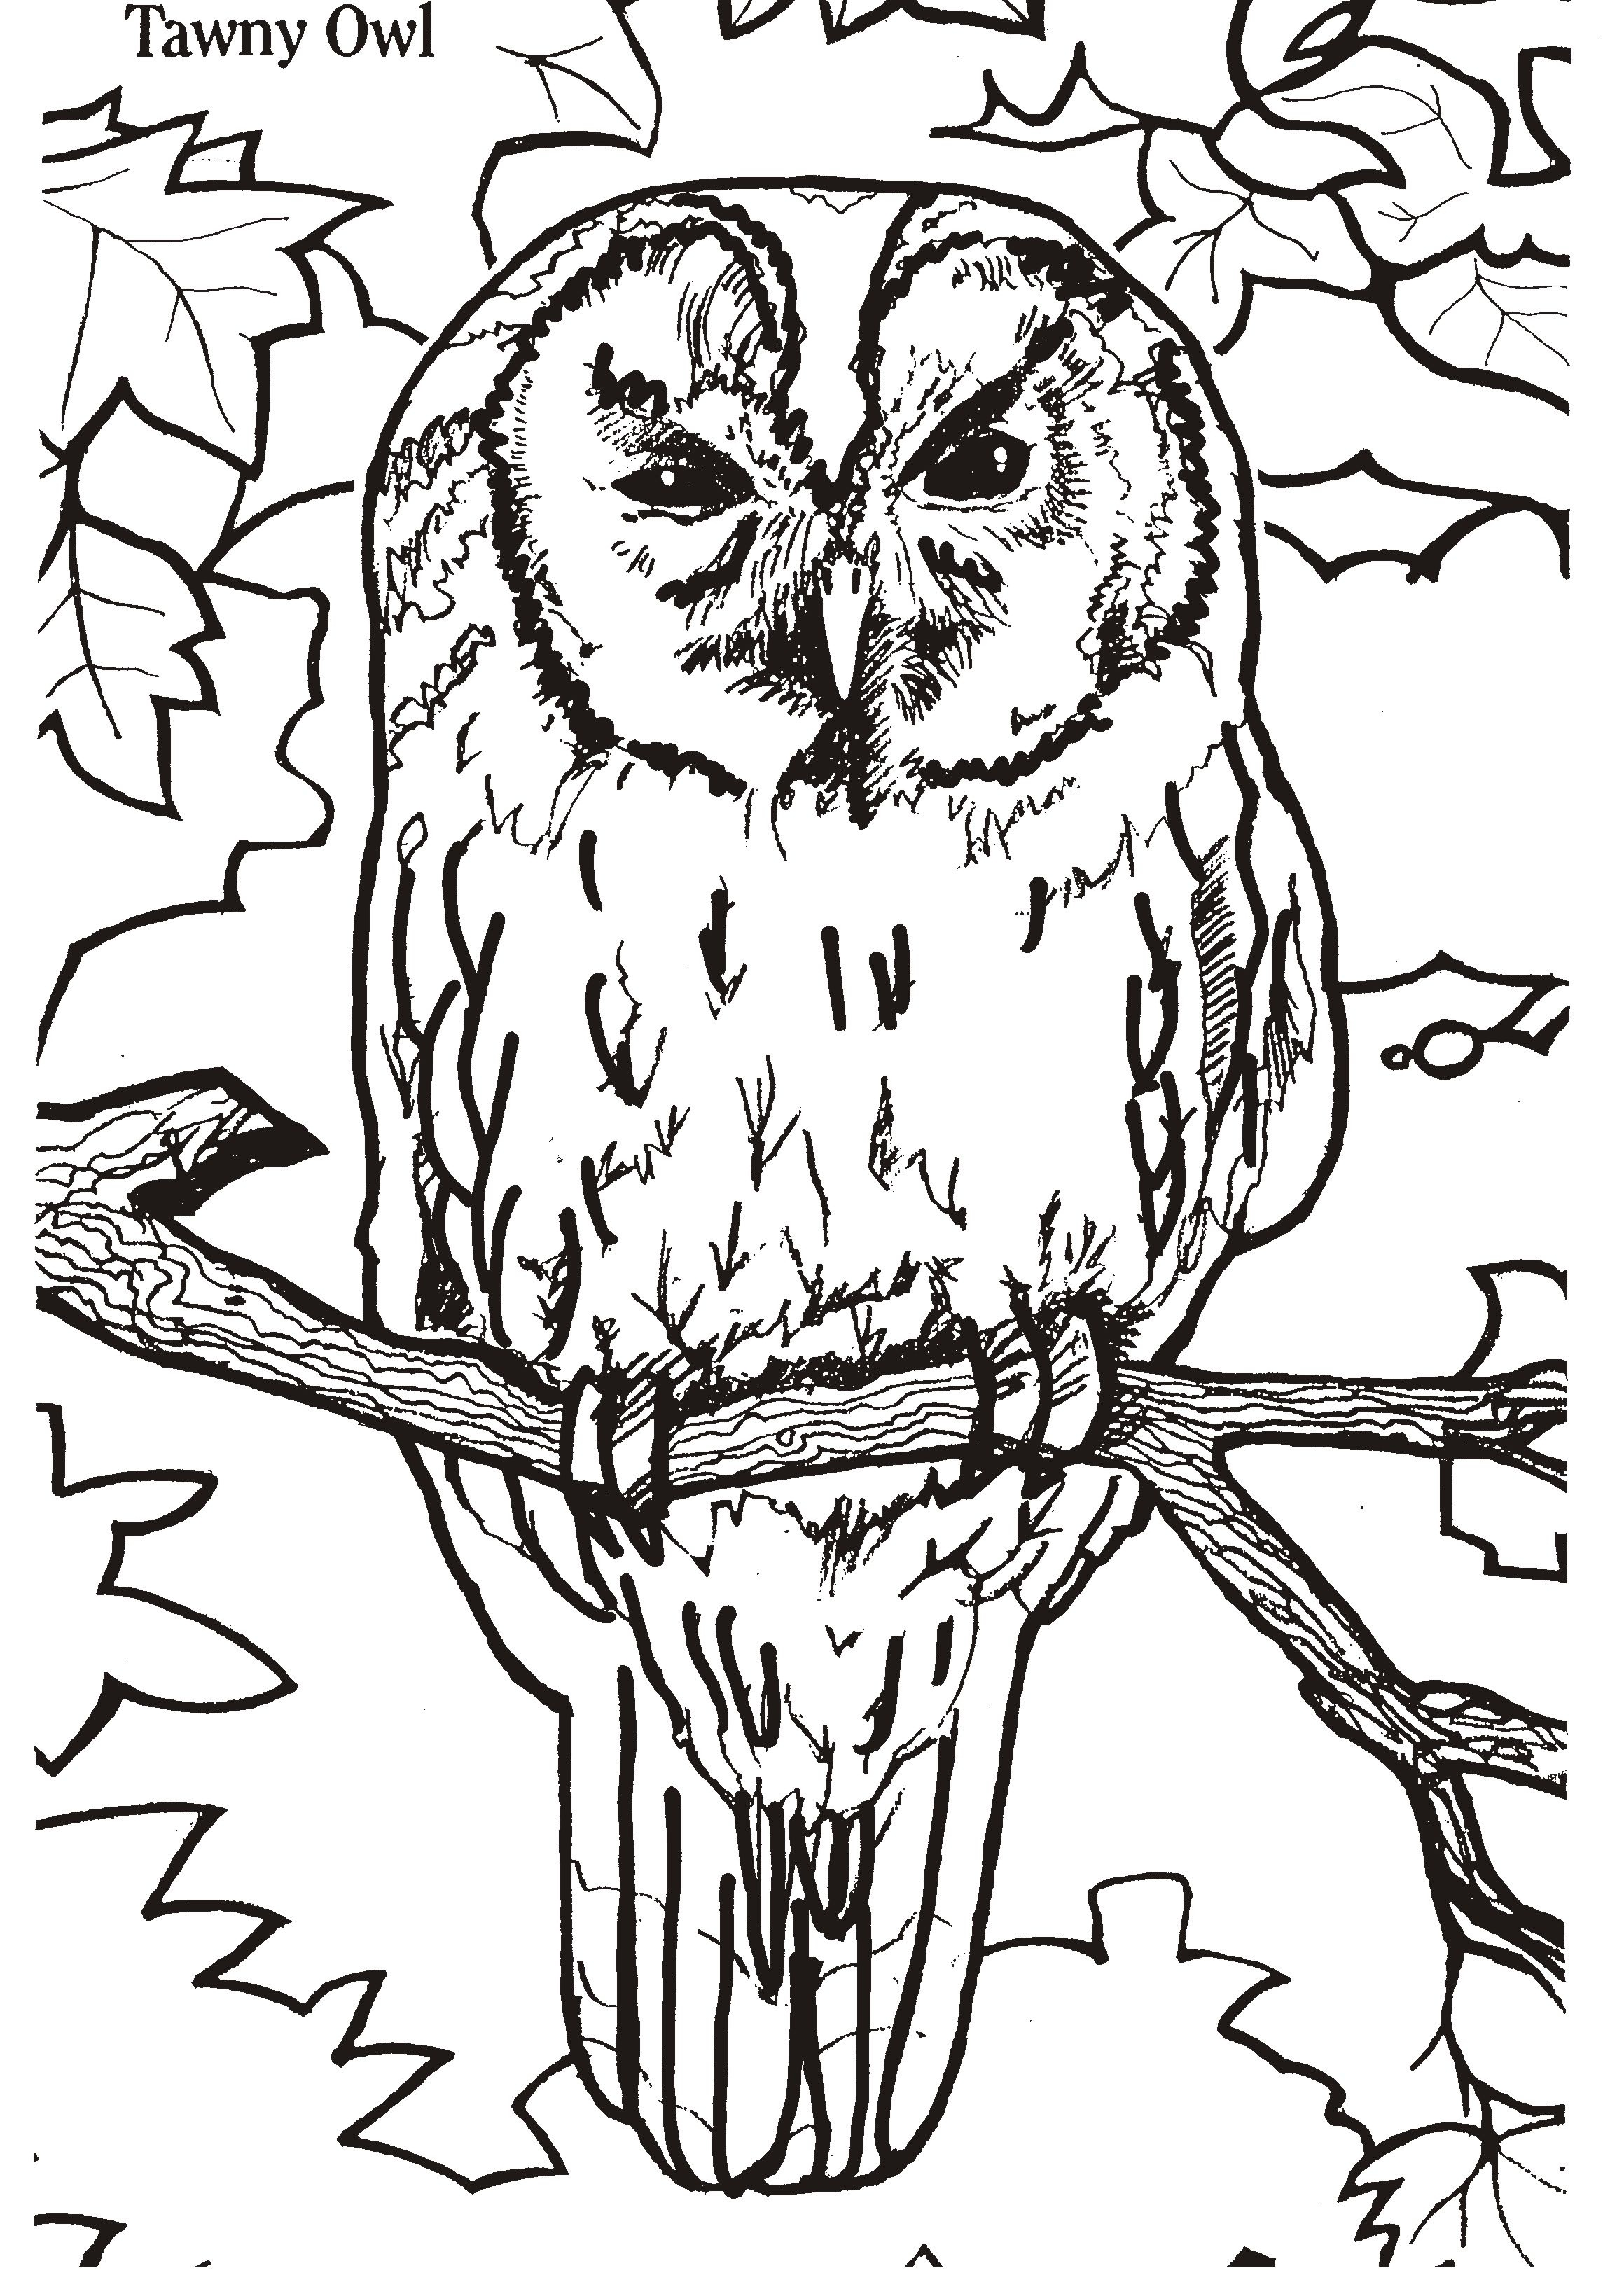 Amazoncom The Eclectic Owl An Adult Coloring Book